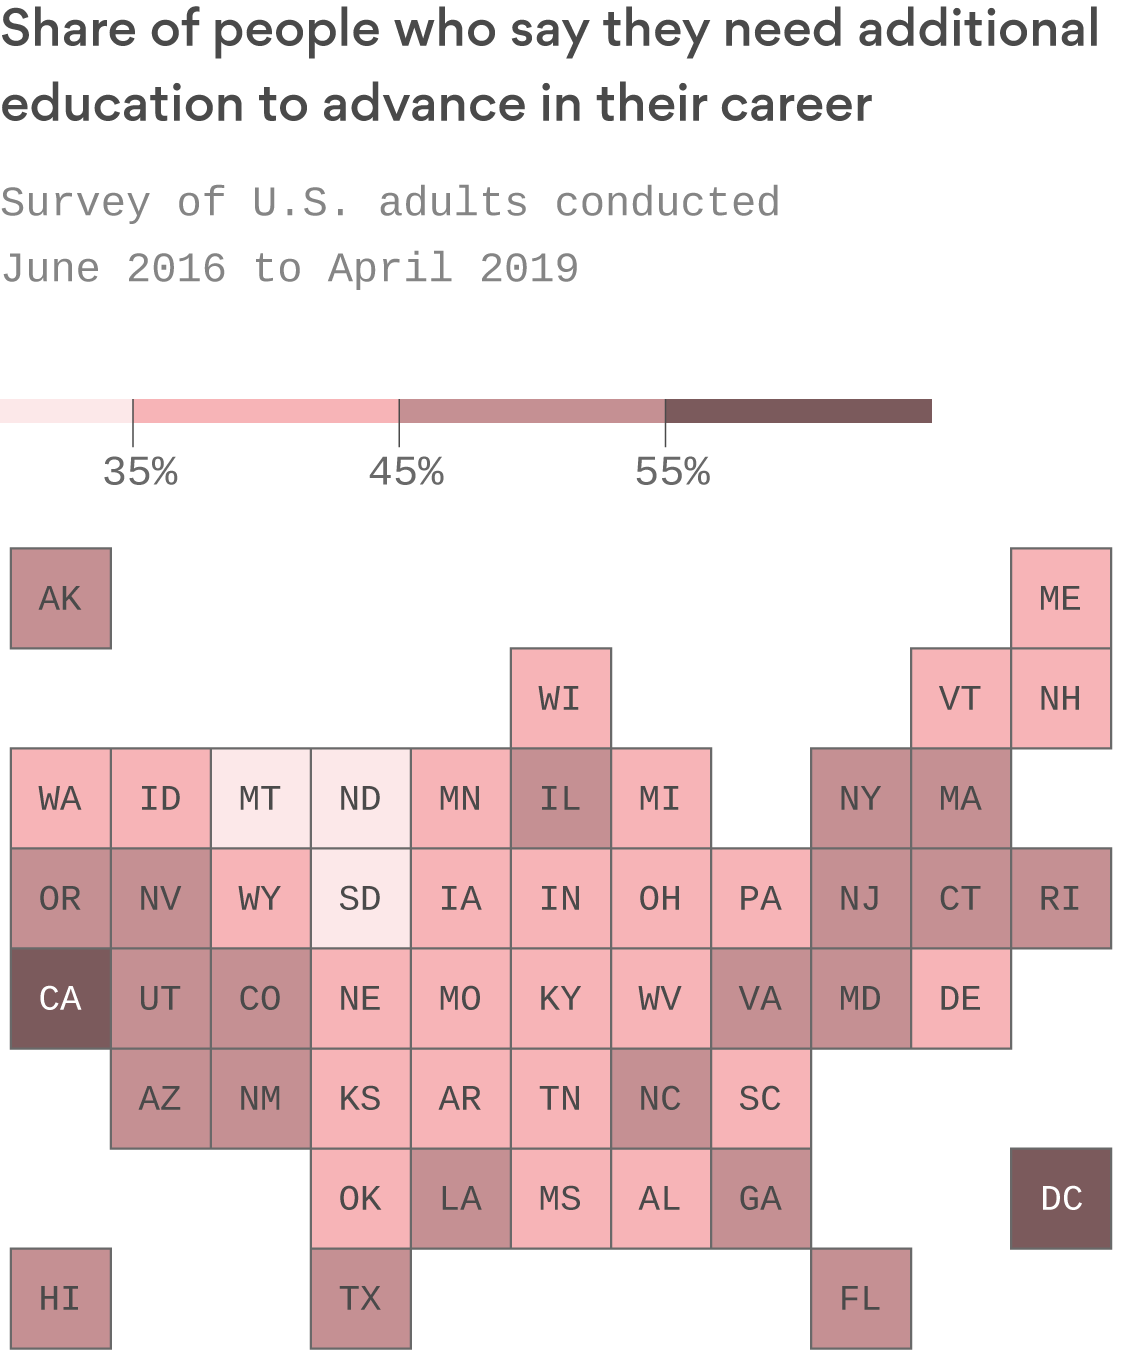 Where in the U.S. people feel they need more education to move up